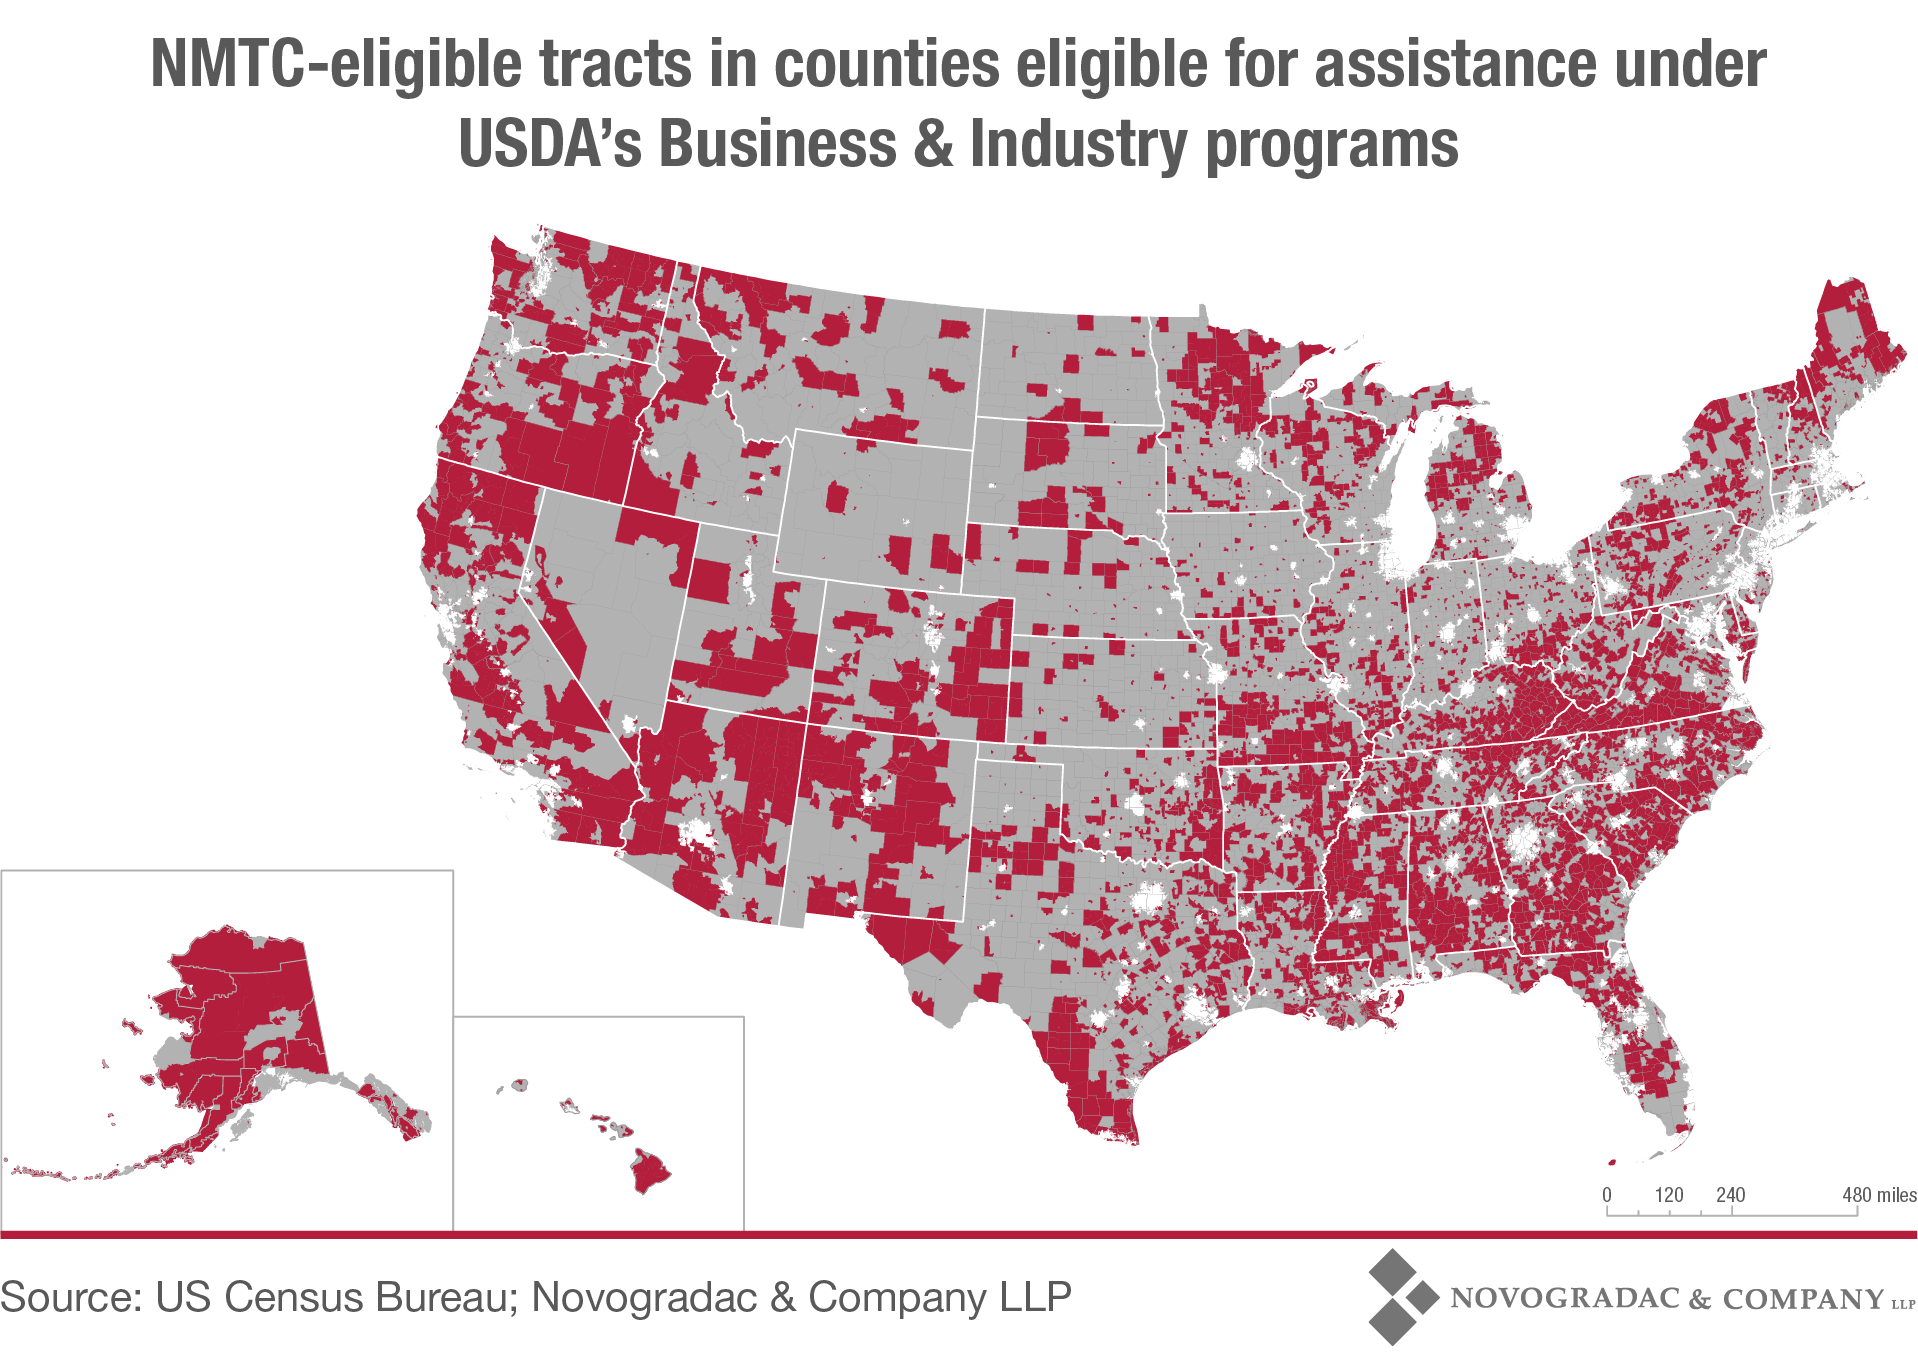 Novogradac Nmtc Map Blog Map NMTC Eligible Tracts in Counties Eligible for Assistance